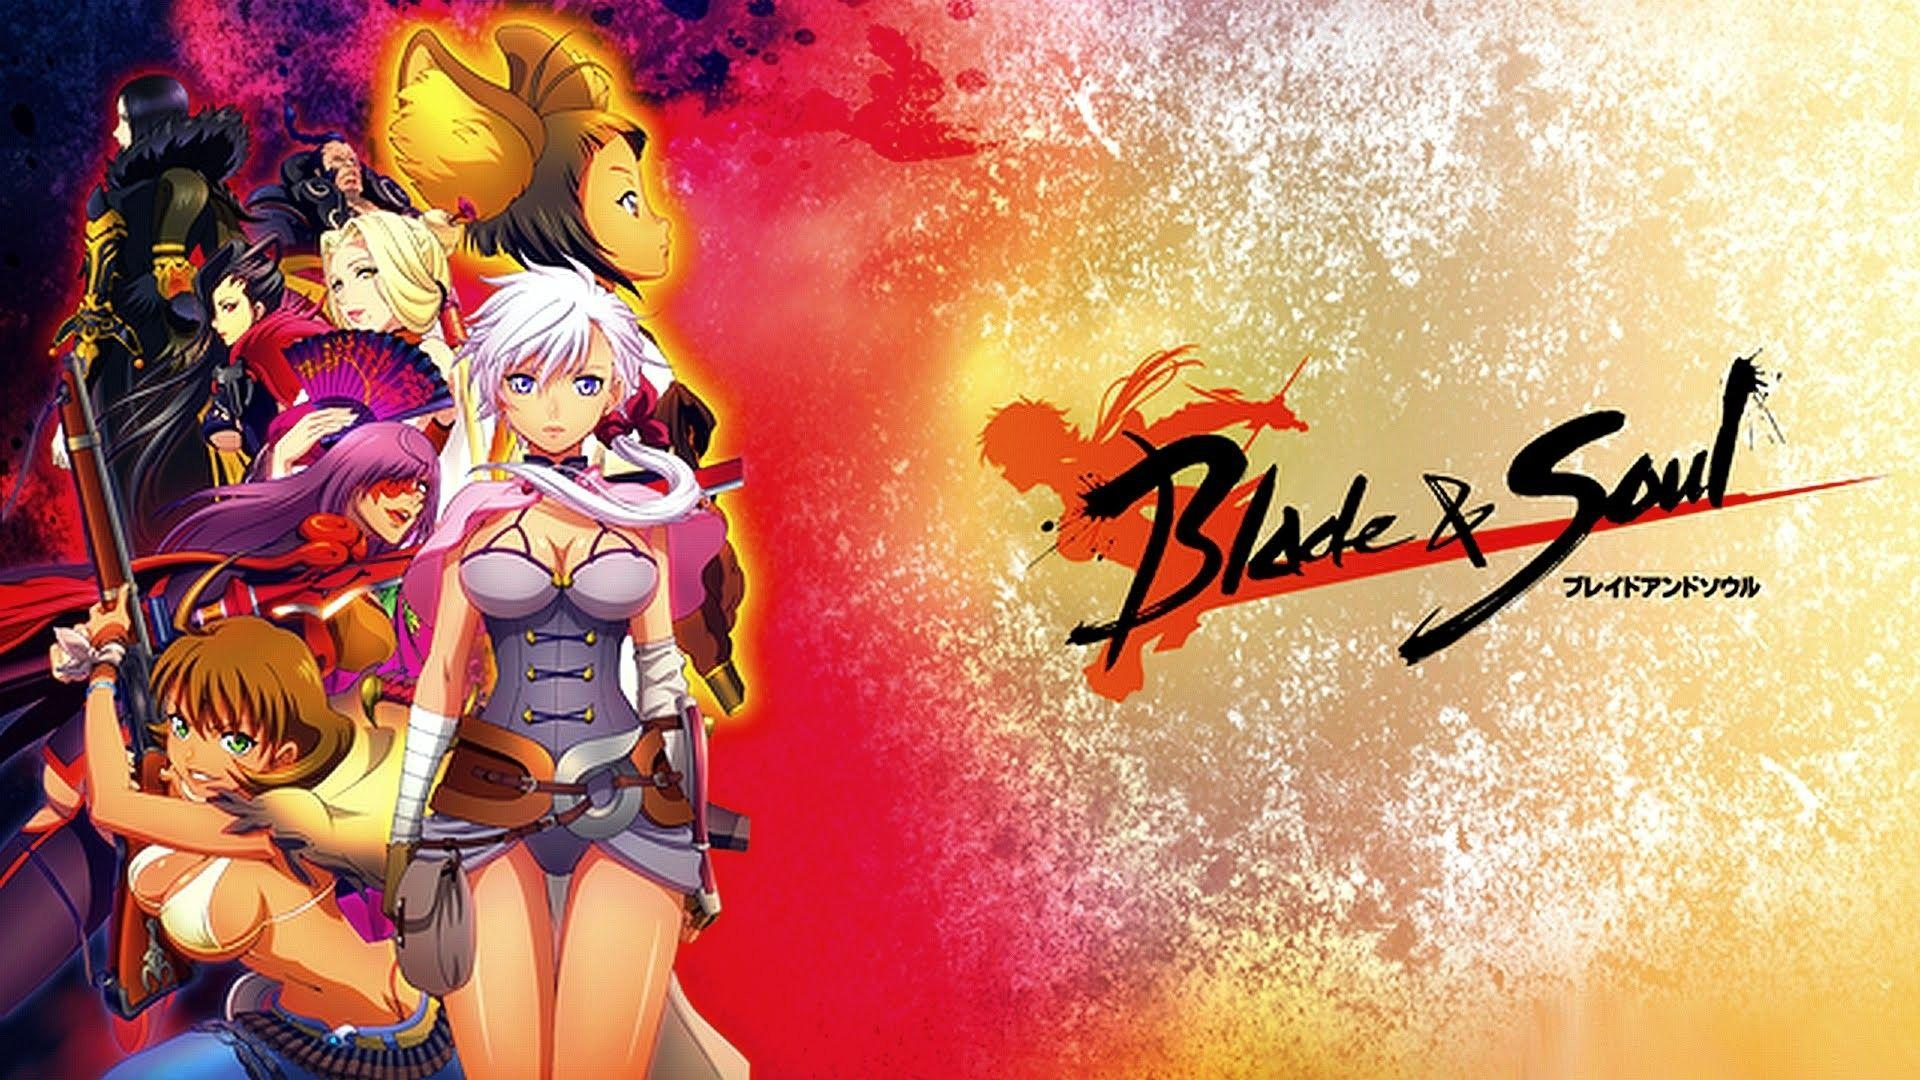 Blade And Soul Anime Wallpapers Hd Wallpaper Cave